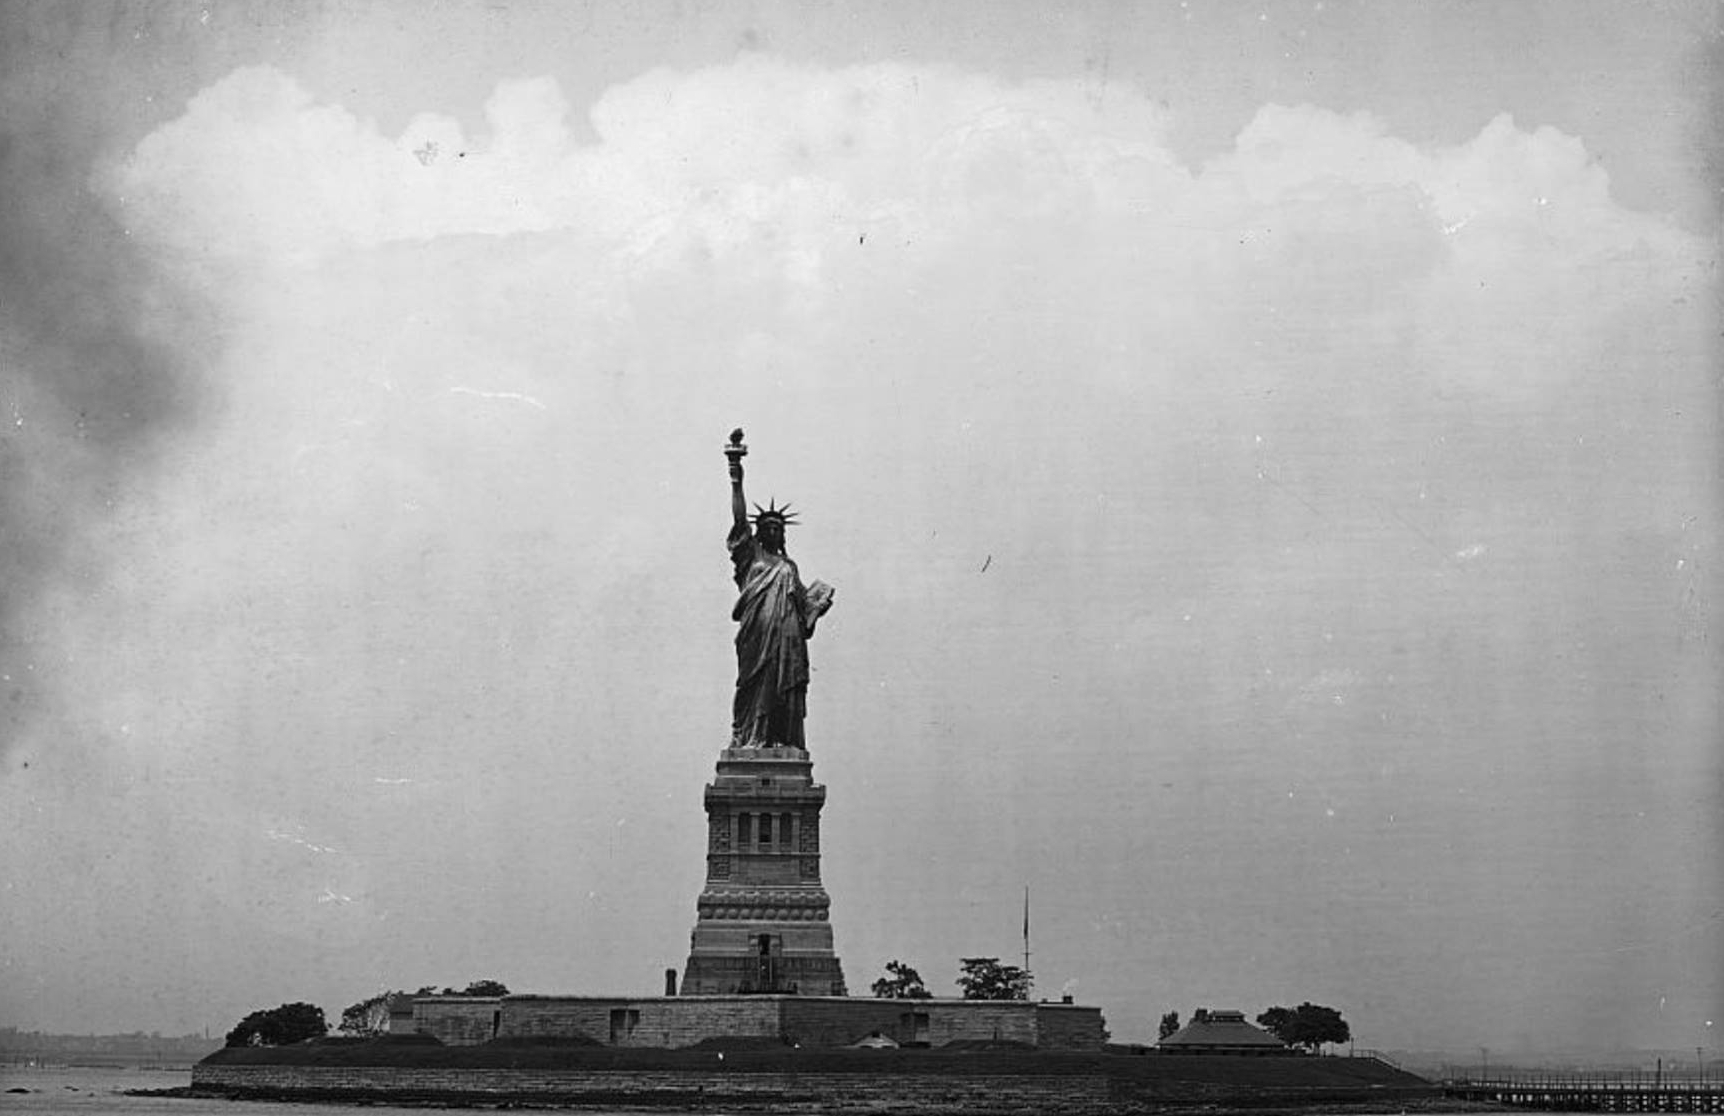 The Statue of Liberty in 1905. (Credit: Henry G. Peabody and Detroit Publishing Co., Library of Congress)